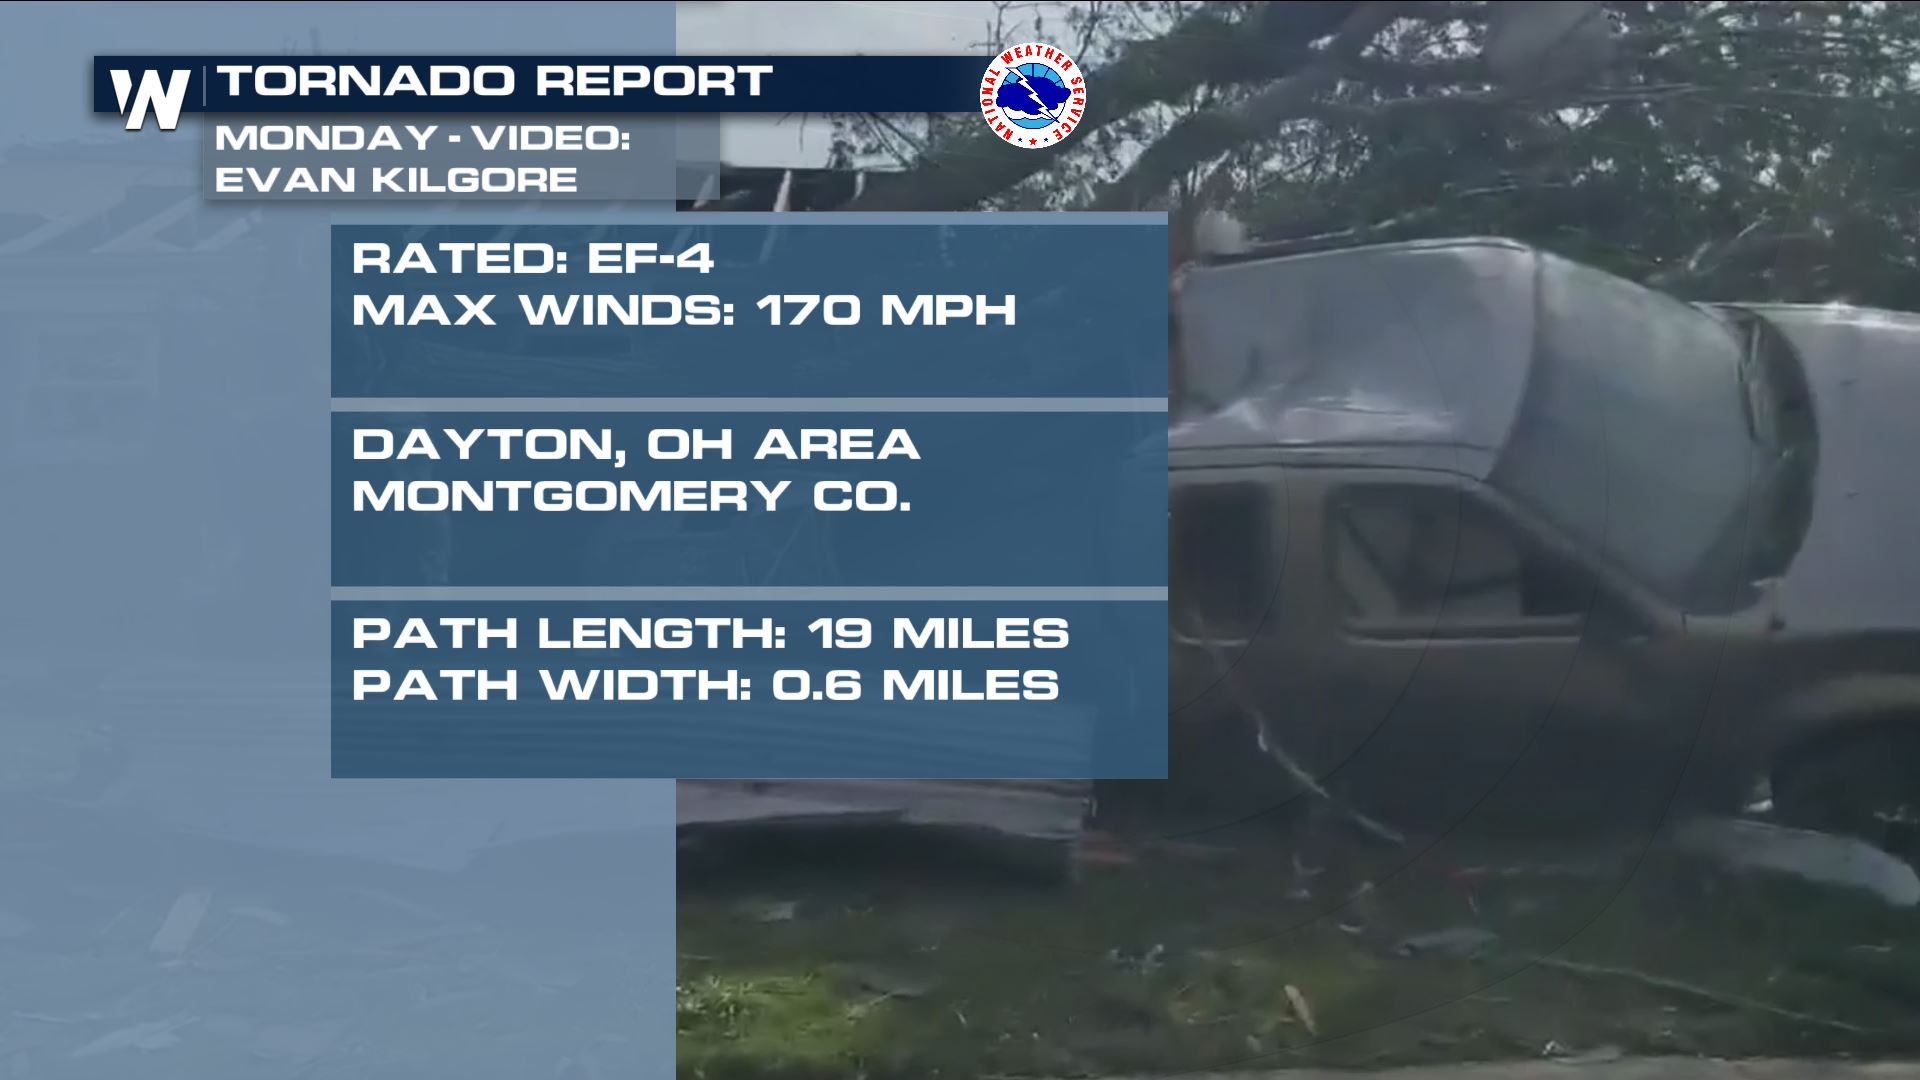 Dayton Tornado Revised Up To EF-4